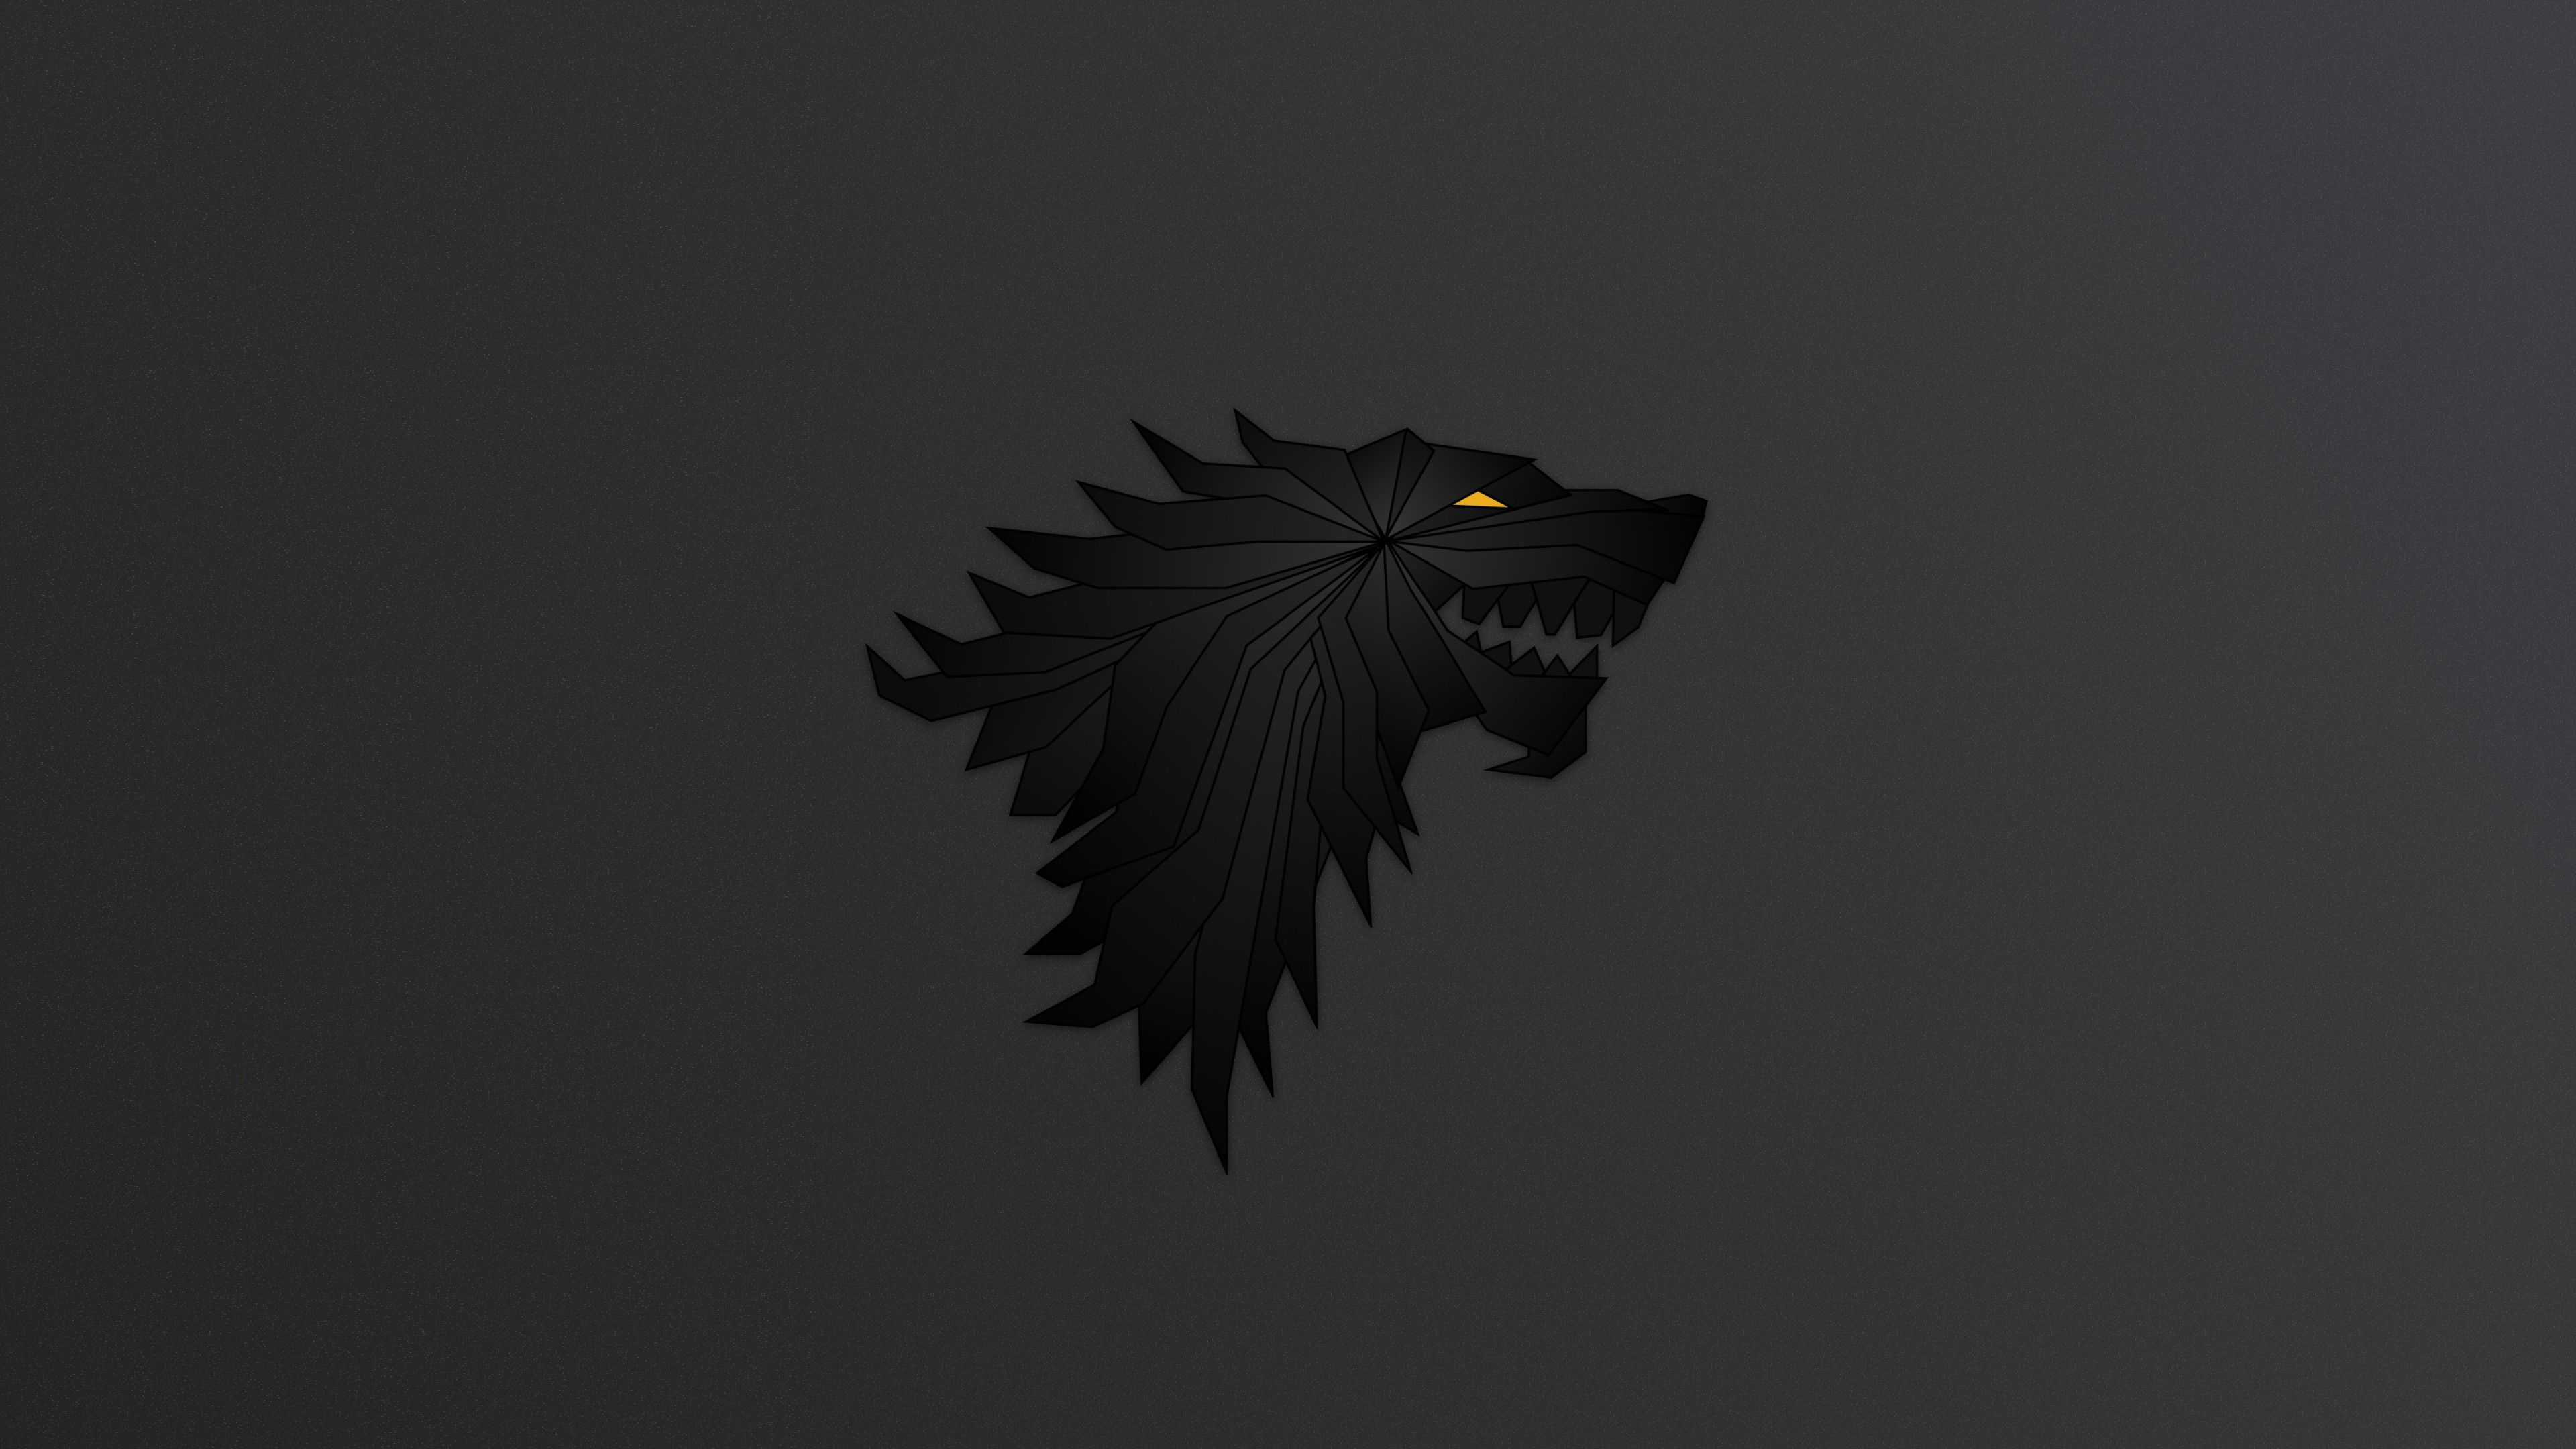 Pin by WallpaperLive on HD Wallpaper in 2019 | House stark ... House Stark Wallpaper Android